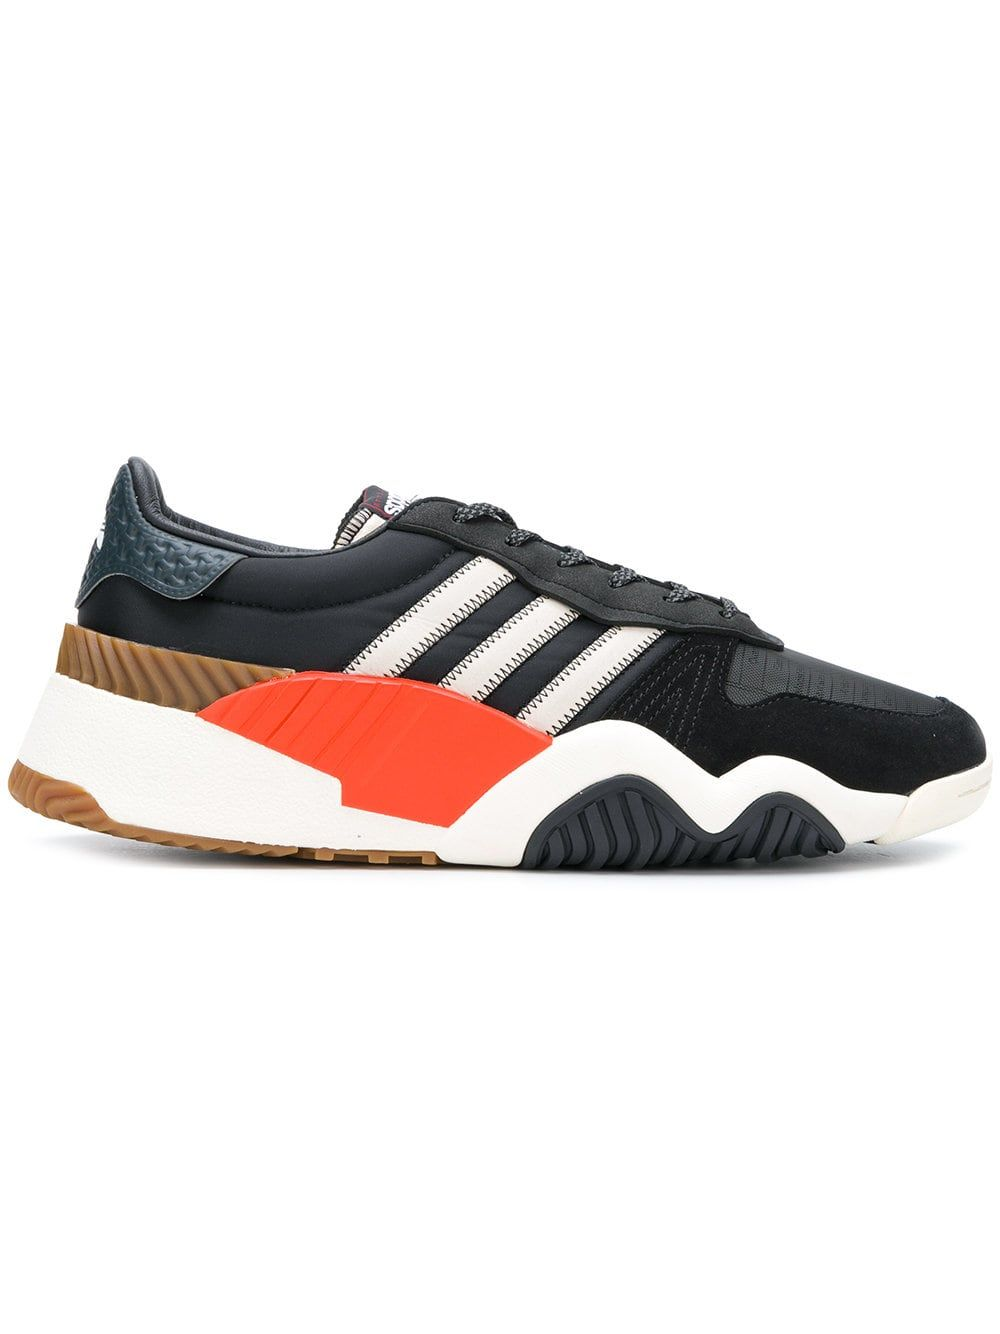 089d7edb7c7cc Adidas Originals By Alexander Wang AW Turnout Sneakers in 2019 ...